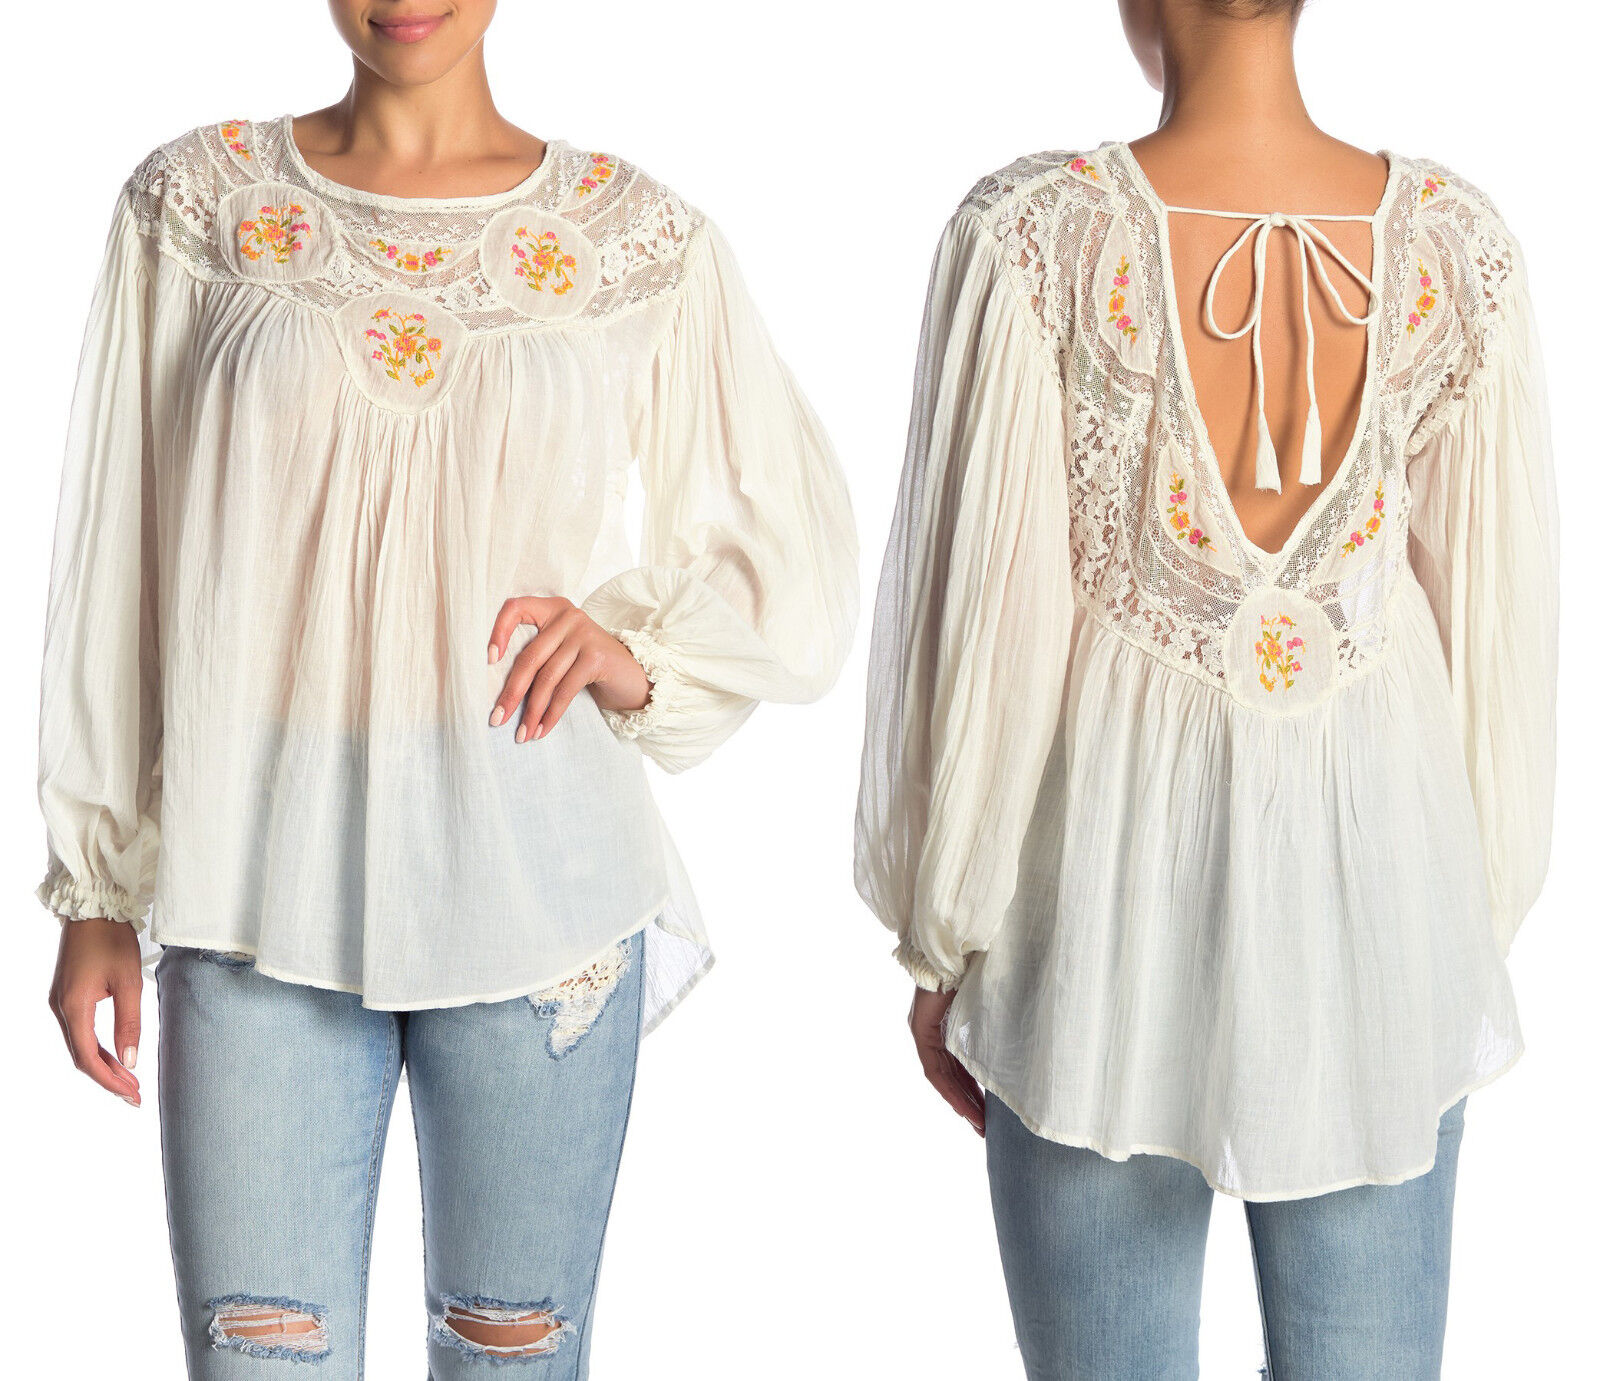 Free People Secret Garden Blouse Top Embroiderot 100% Cotton IVORY Größe XS